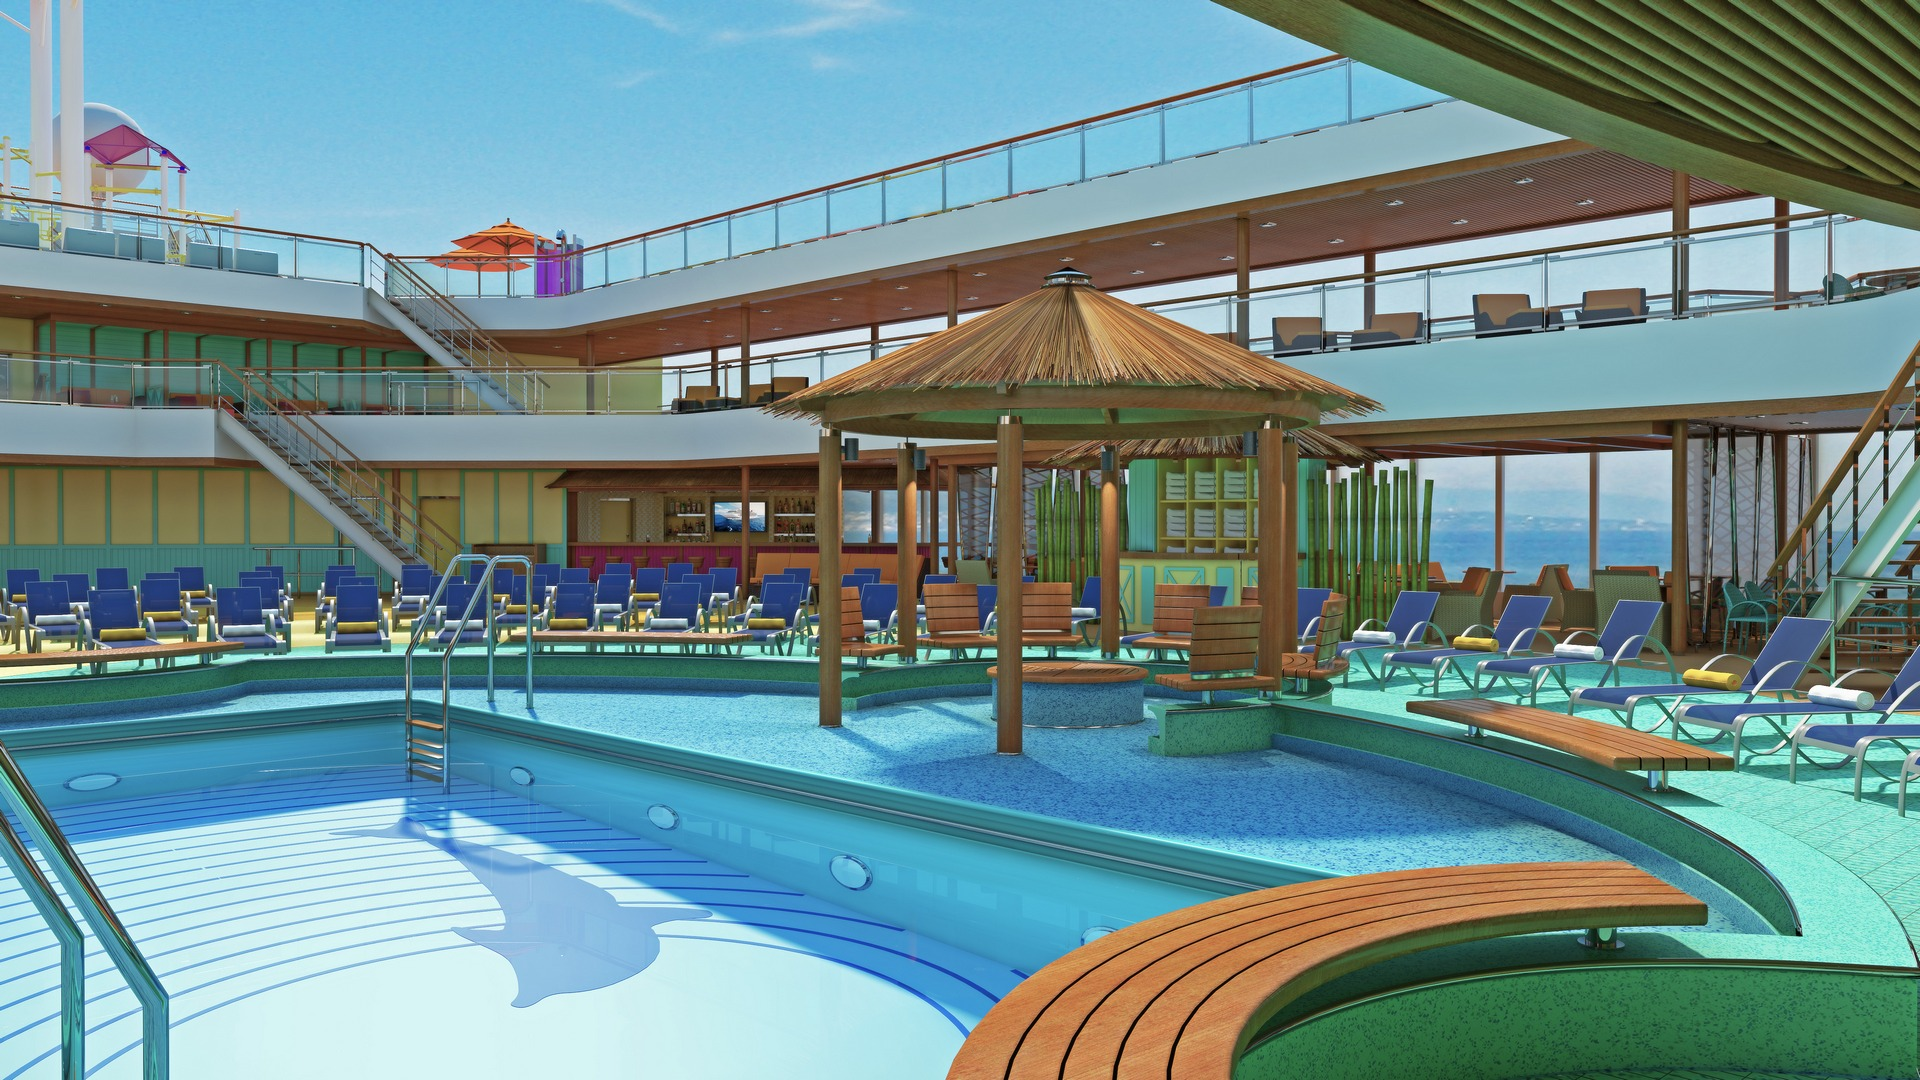 New Carnival Breeze To Debut Sushi Restaurant, Outdoor BBQ